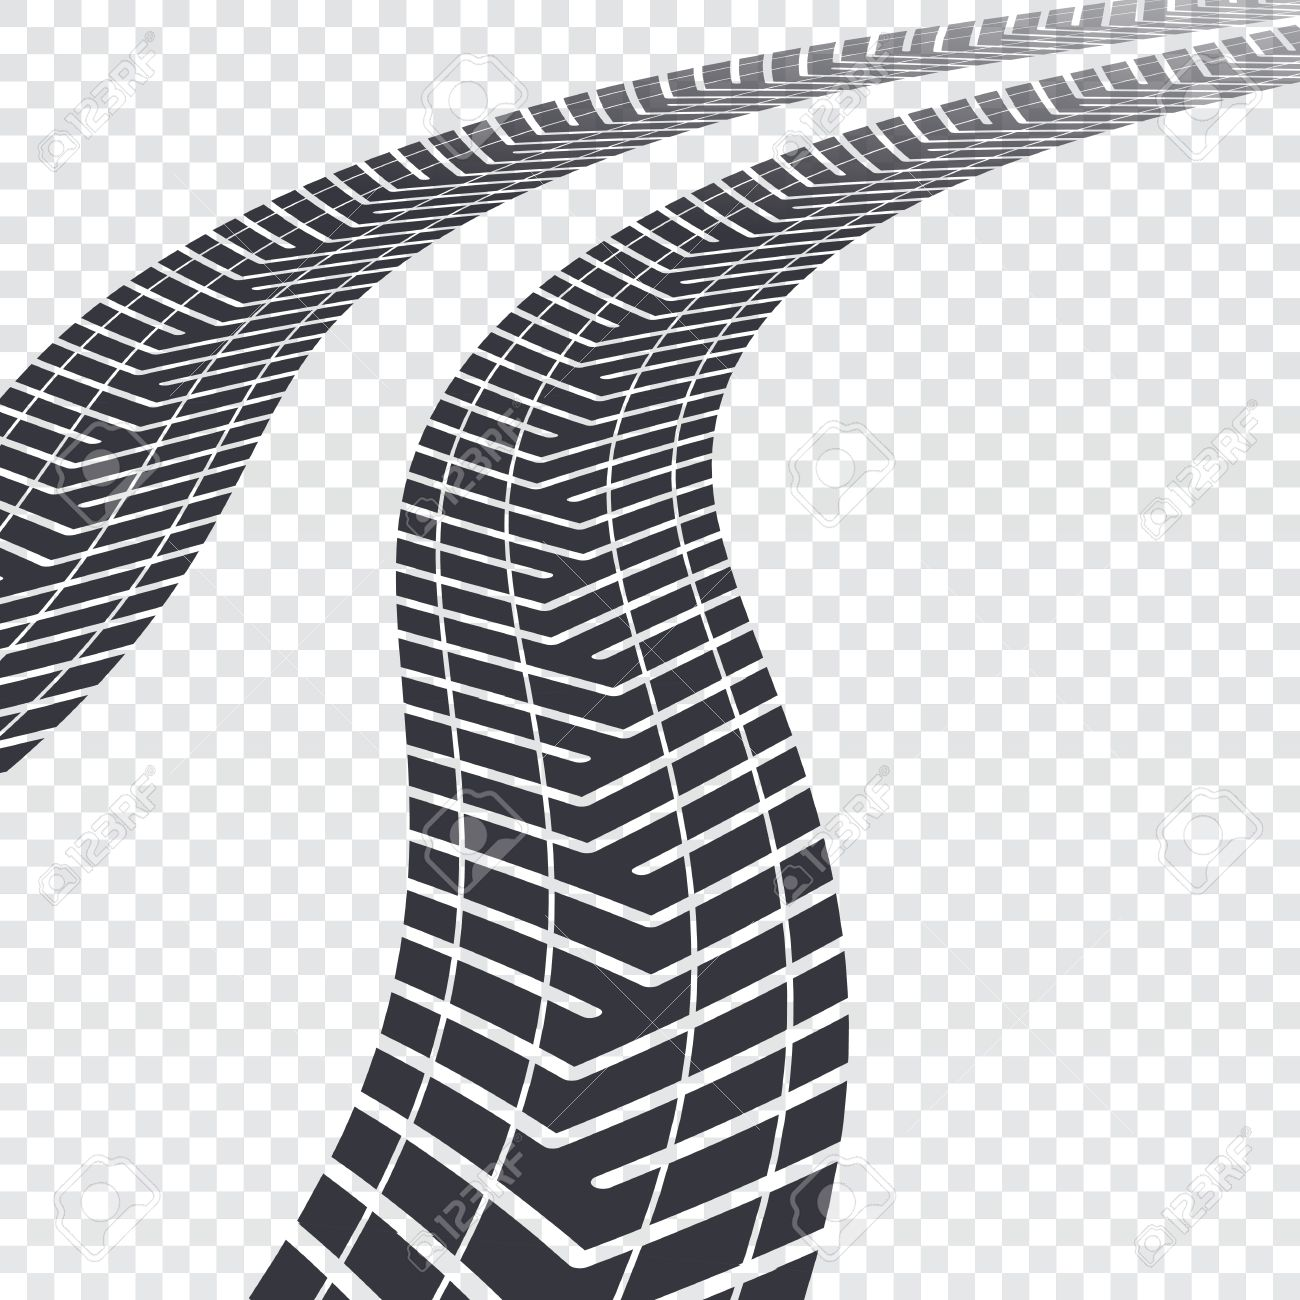 winding tire tracks on transparent background vector illustration rh 123rf com muddy tire tracks clipart jeep tire tracks clipart